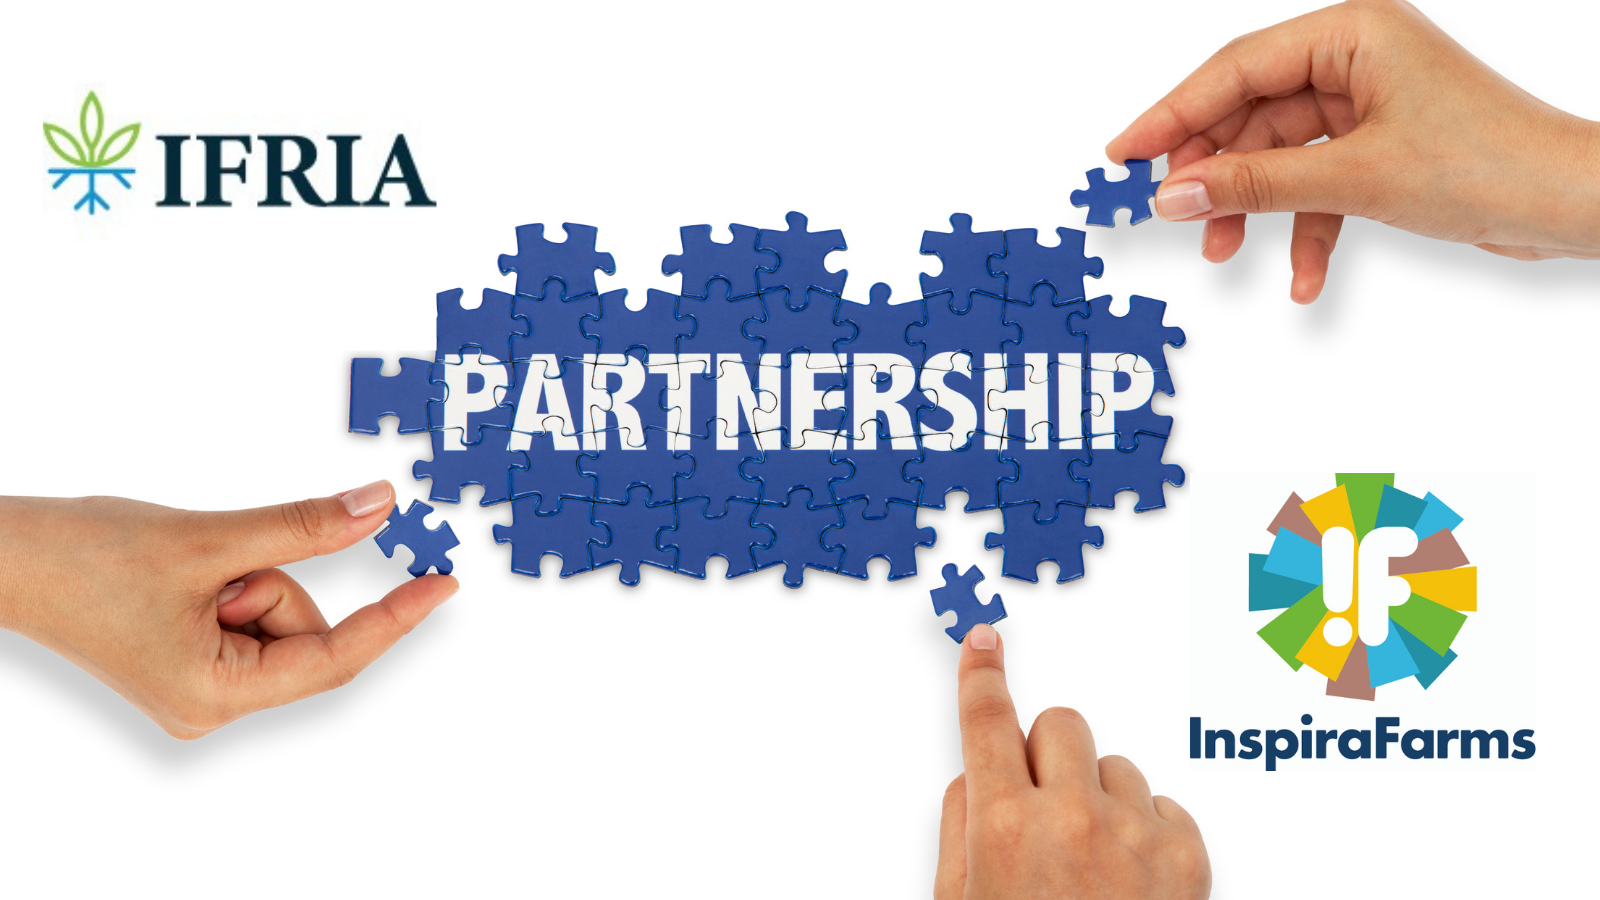 Ifria and InspiraFarms announce strategic partnership